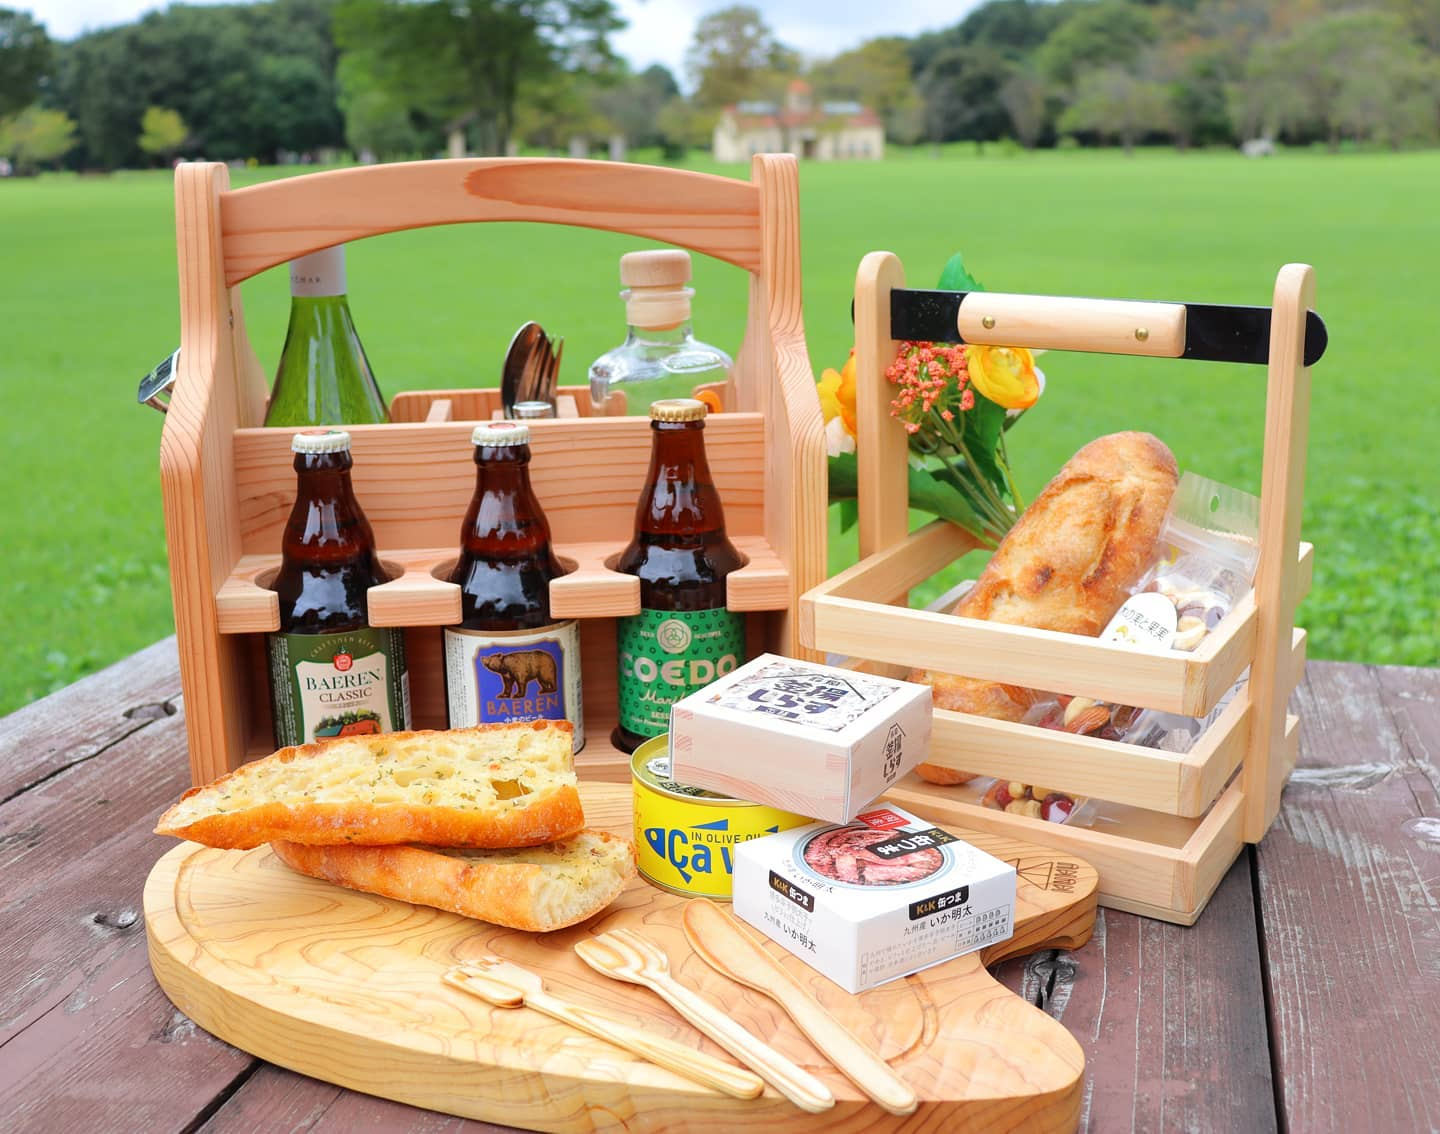 大人ピクニック🌲#woodboardkuku #beer #beercaddy #woodplate #opencafe #picnic #woodworking #nakawood @woodboardkuku